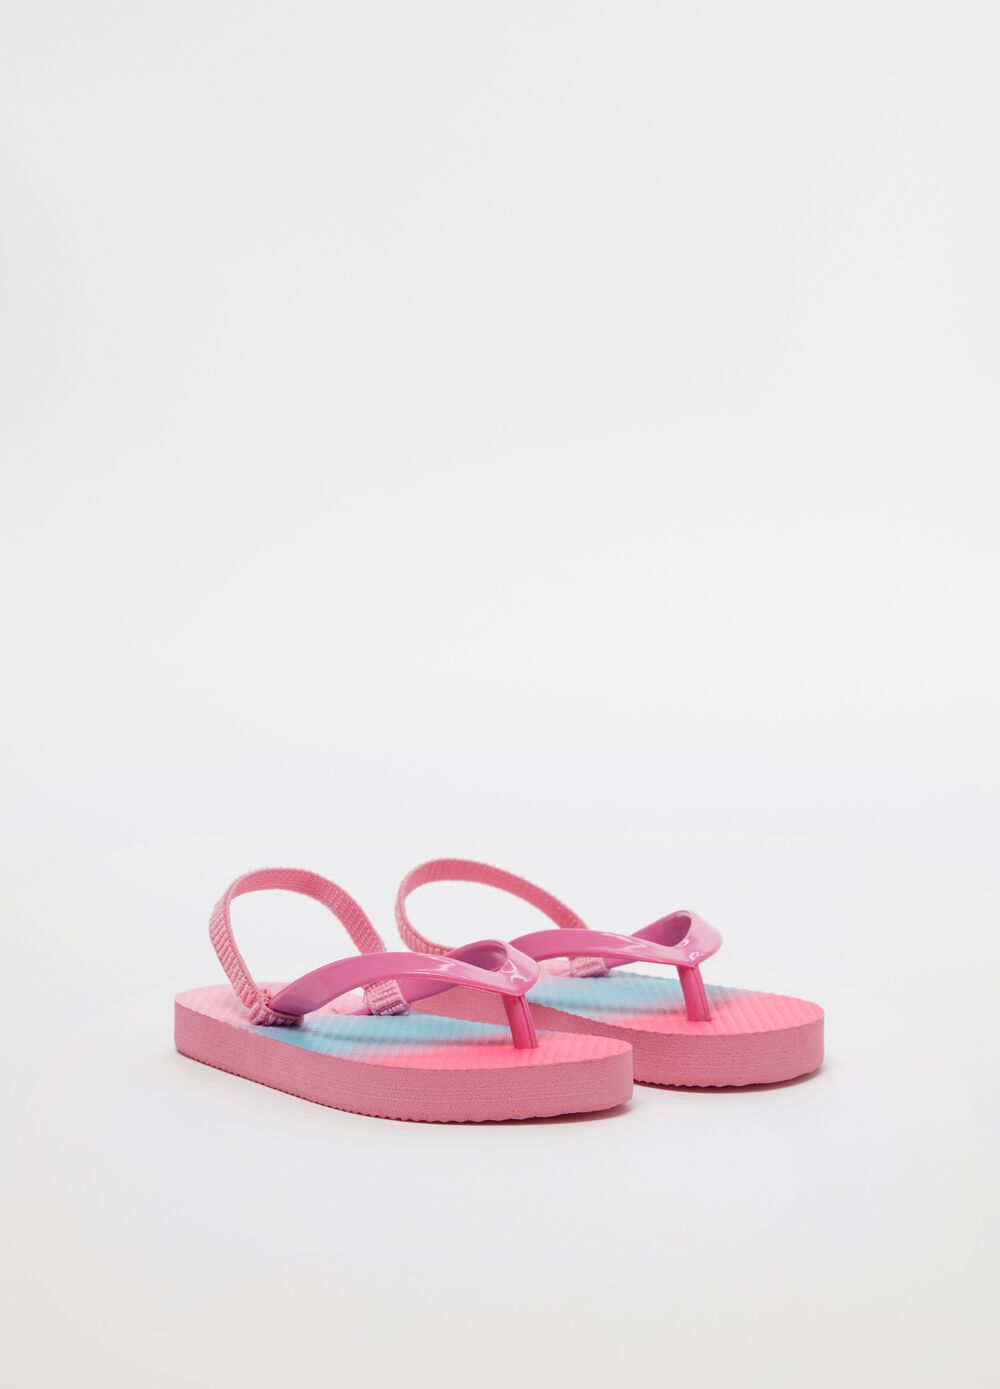 Thong sandals with degradé-effect laces